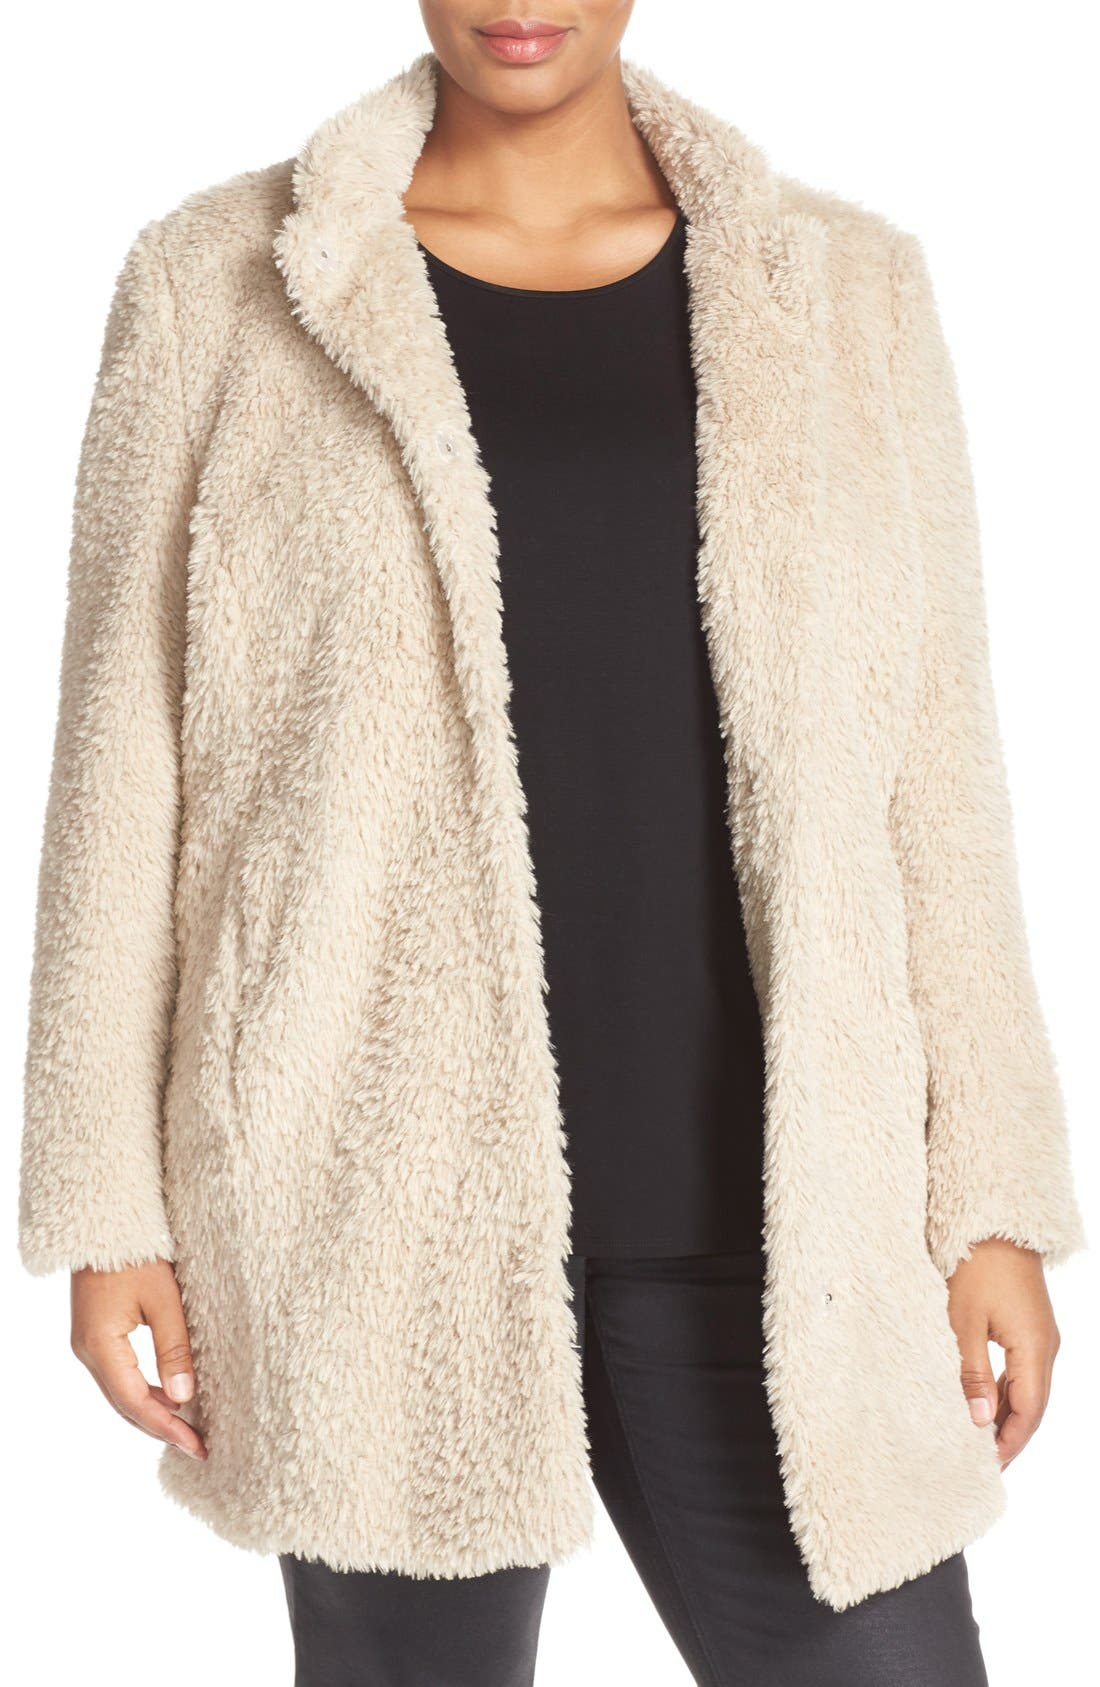 Main Image - Kenneth Cole New York 'Original Teddy' Faux Fur Coat (Plus Size)